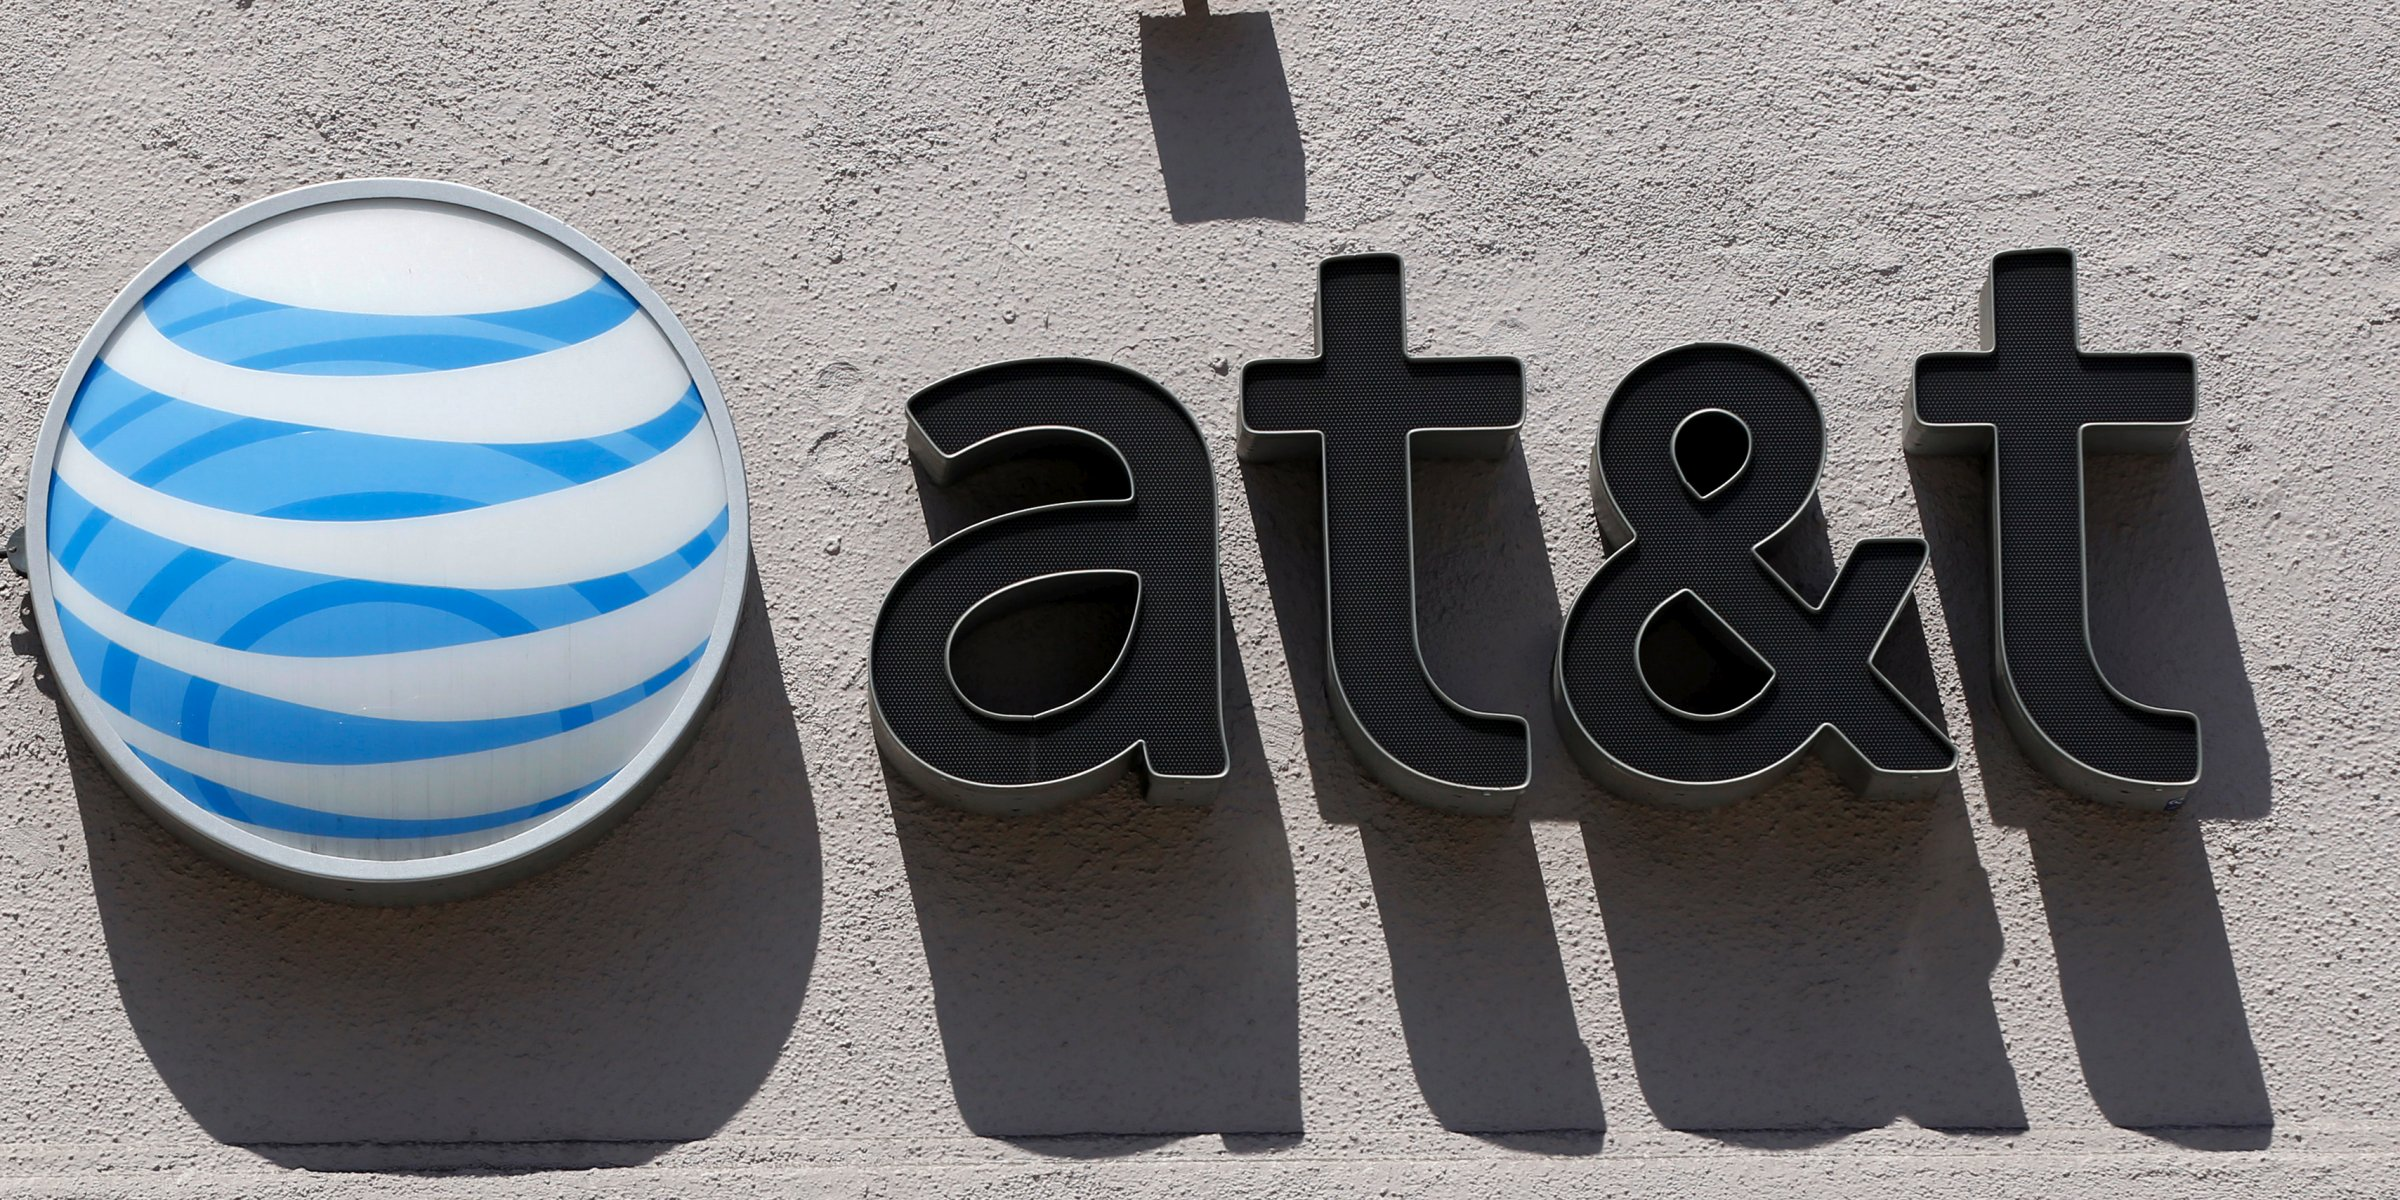 Att earnings brace for impact att inc nyset seeking alpha as atts management has issued a partial pre announcement in the wake of the seasons natural disasters softness in legacy video subscription well buycottarizona